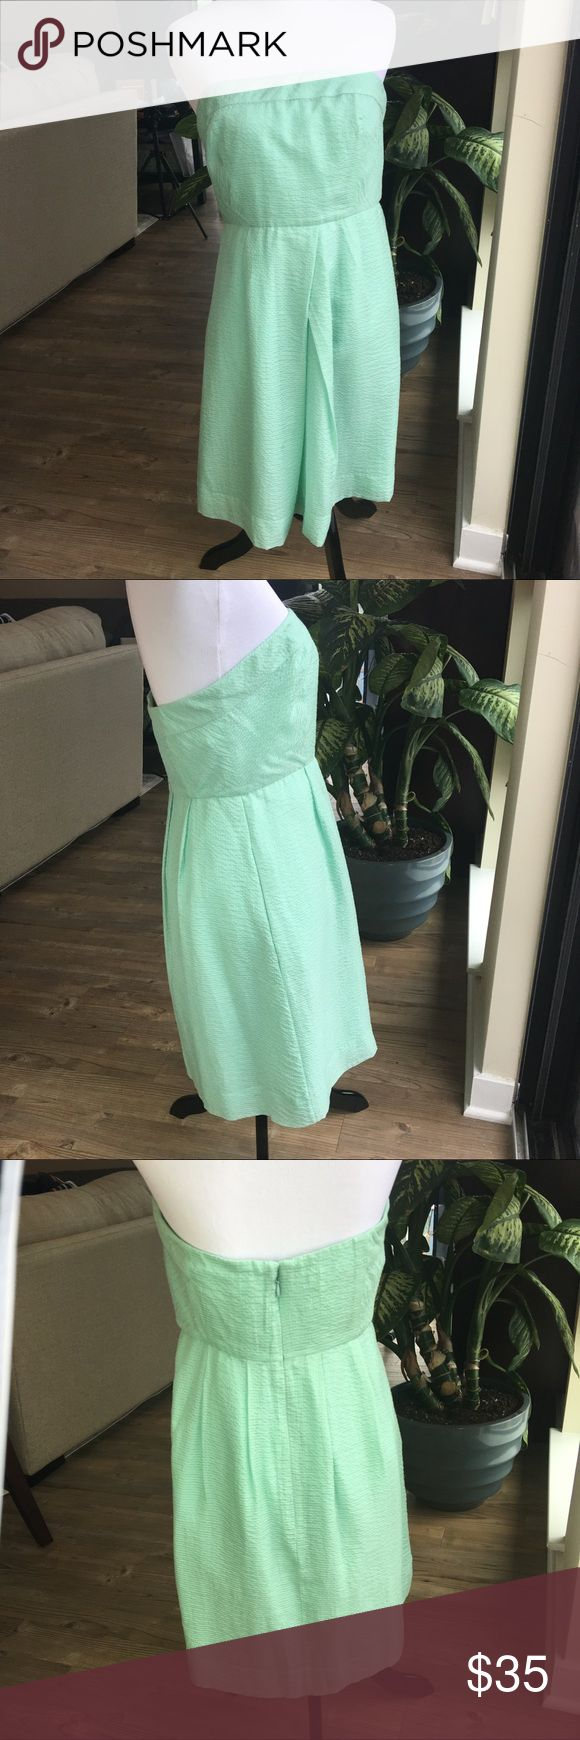 "J. Crew Strapless Party cocktail Dress Pre-owned Women's J.Crew Strapless Party Dress  Can be worn to pretty much any event where you want to look flirty! Wedding guest, bridesmaid, showers etc. - This dress gets the job done!  •	8 Petite  •	Strapless  •	Knee Length  •	Mint Green - Light Green Color  •	Has pockets  •	Pit to Pit is approx 16""  •	Zip up the back  •	Under bust 14""  •	Length is approx 29""  •	No stains or holes  •	Non-smoking home J. Crew Dresses Strapless"